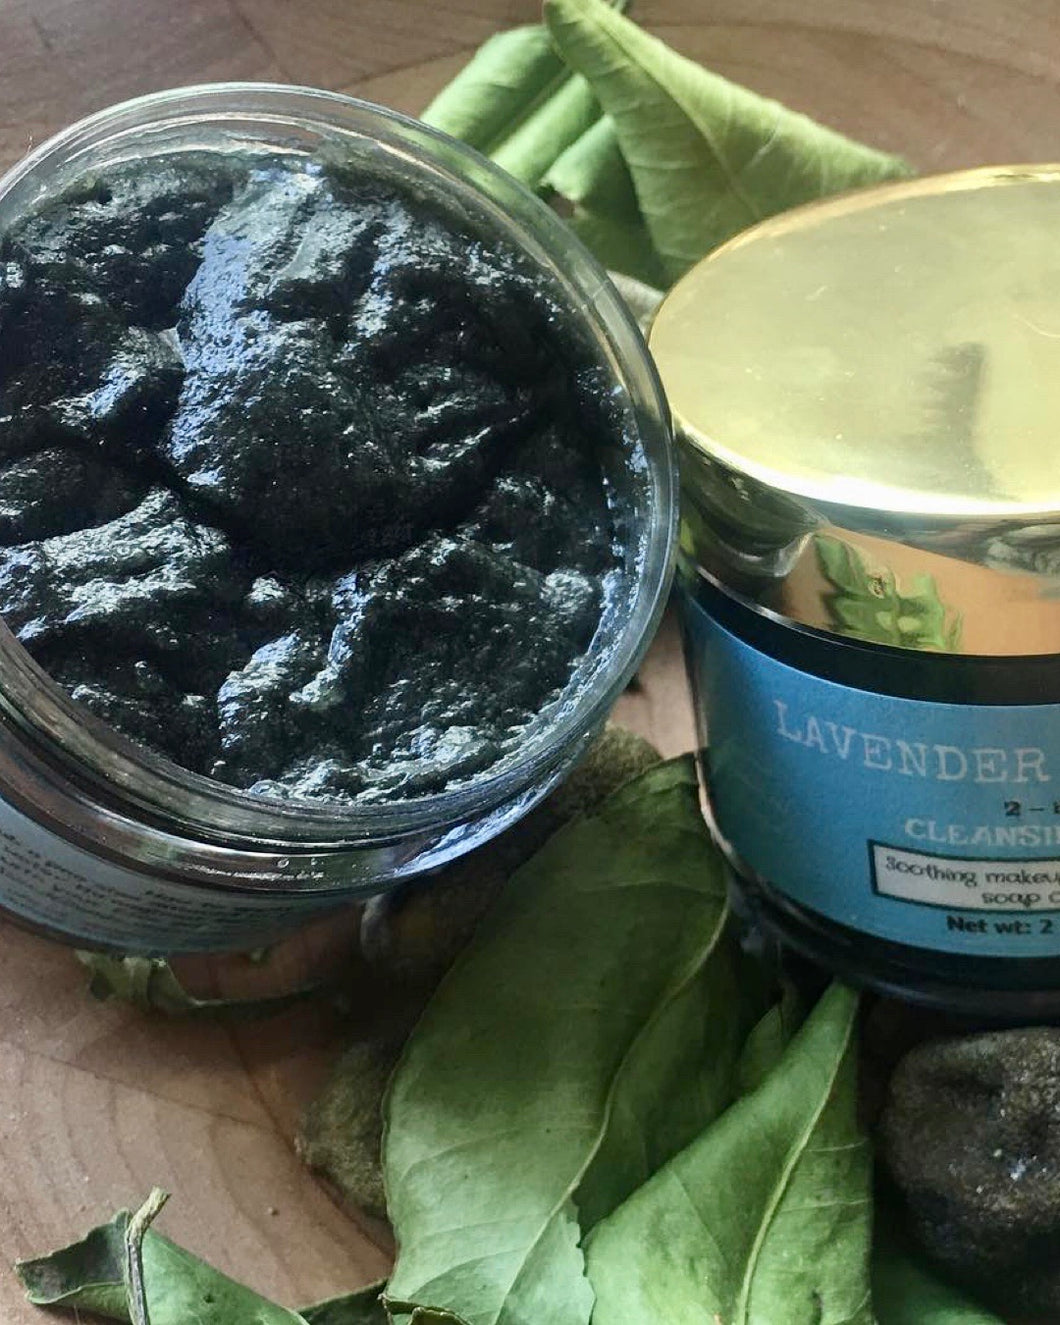 Lavender Charcoal Double Cleansing Soap/Balm